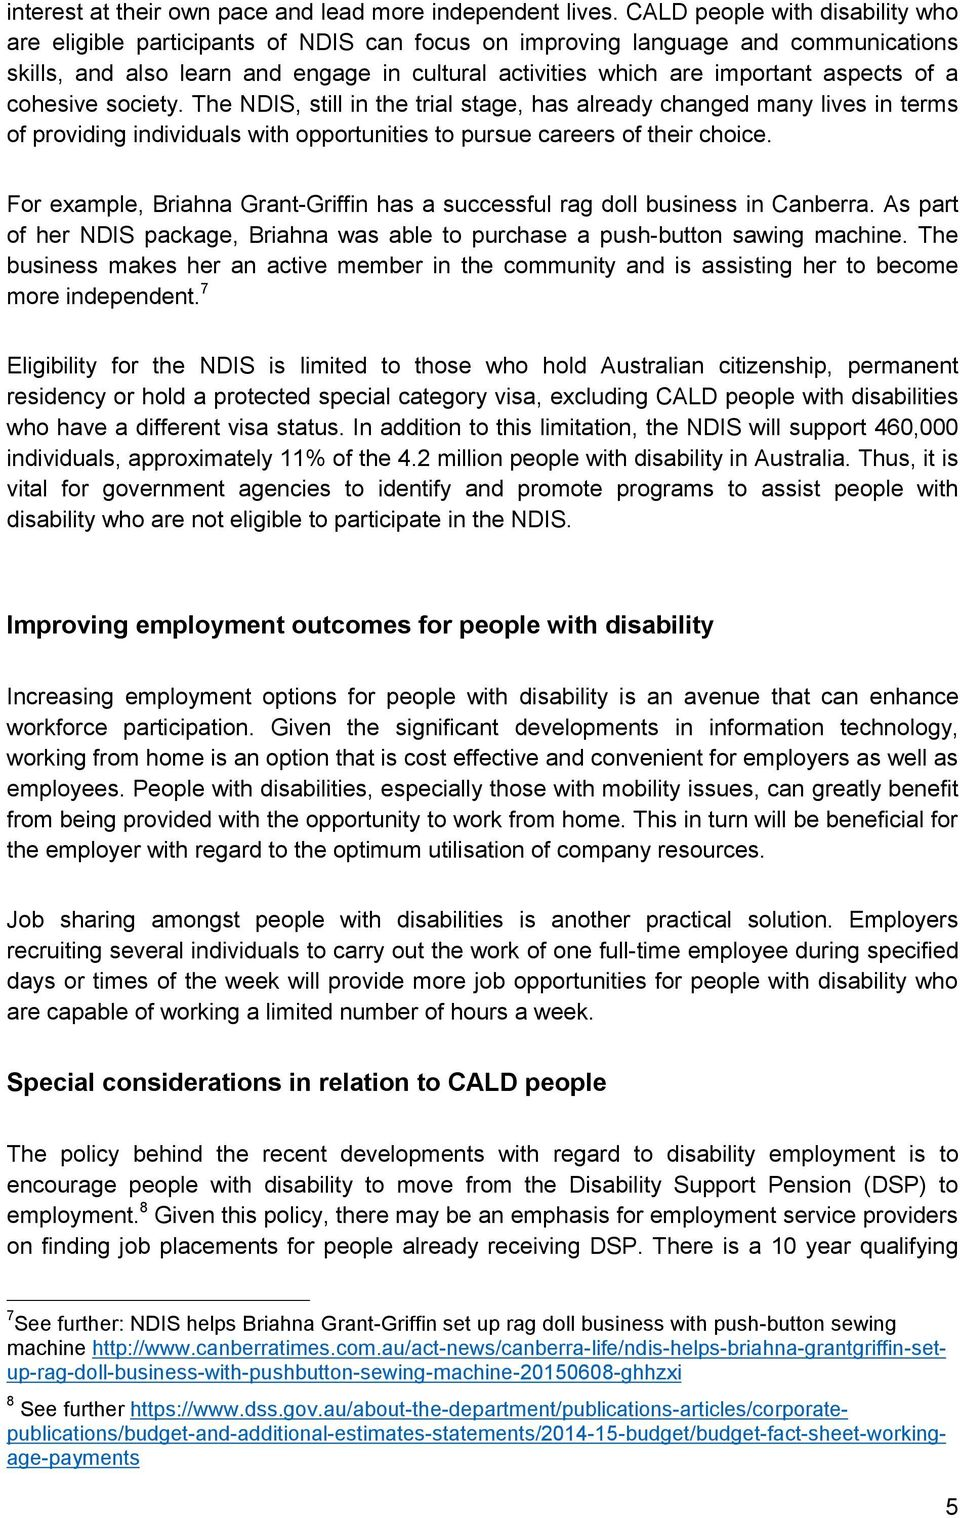 aspects of a cohesive society. The NDIS, still in the trial stage, has already changed many lives in terms of providing individuals with opportunities to pursue careers of their choice.